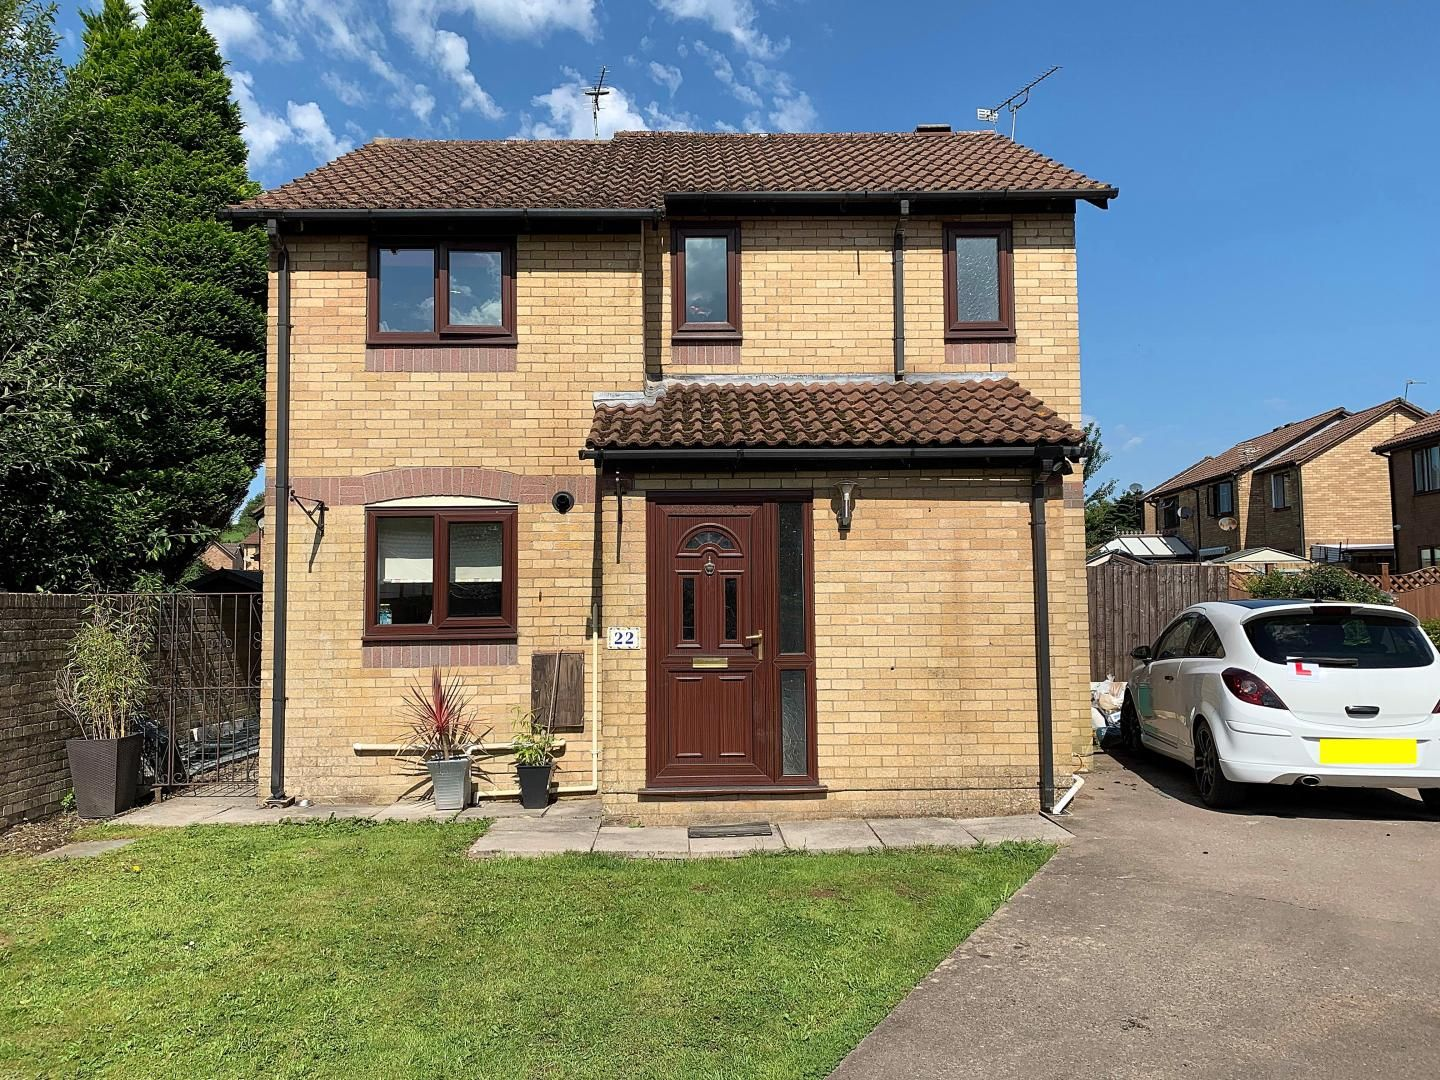 3 bed house for sale in Chandlers Reach - Property Image 1